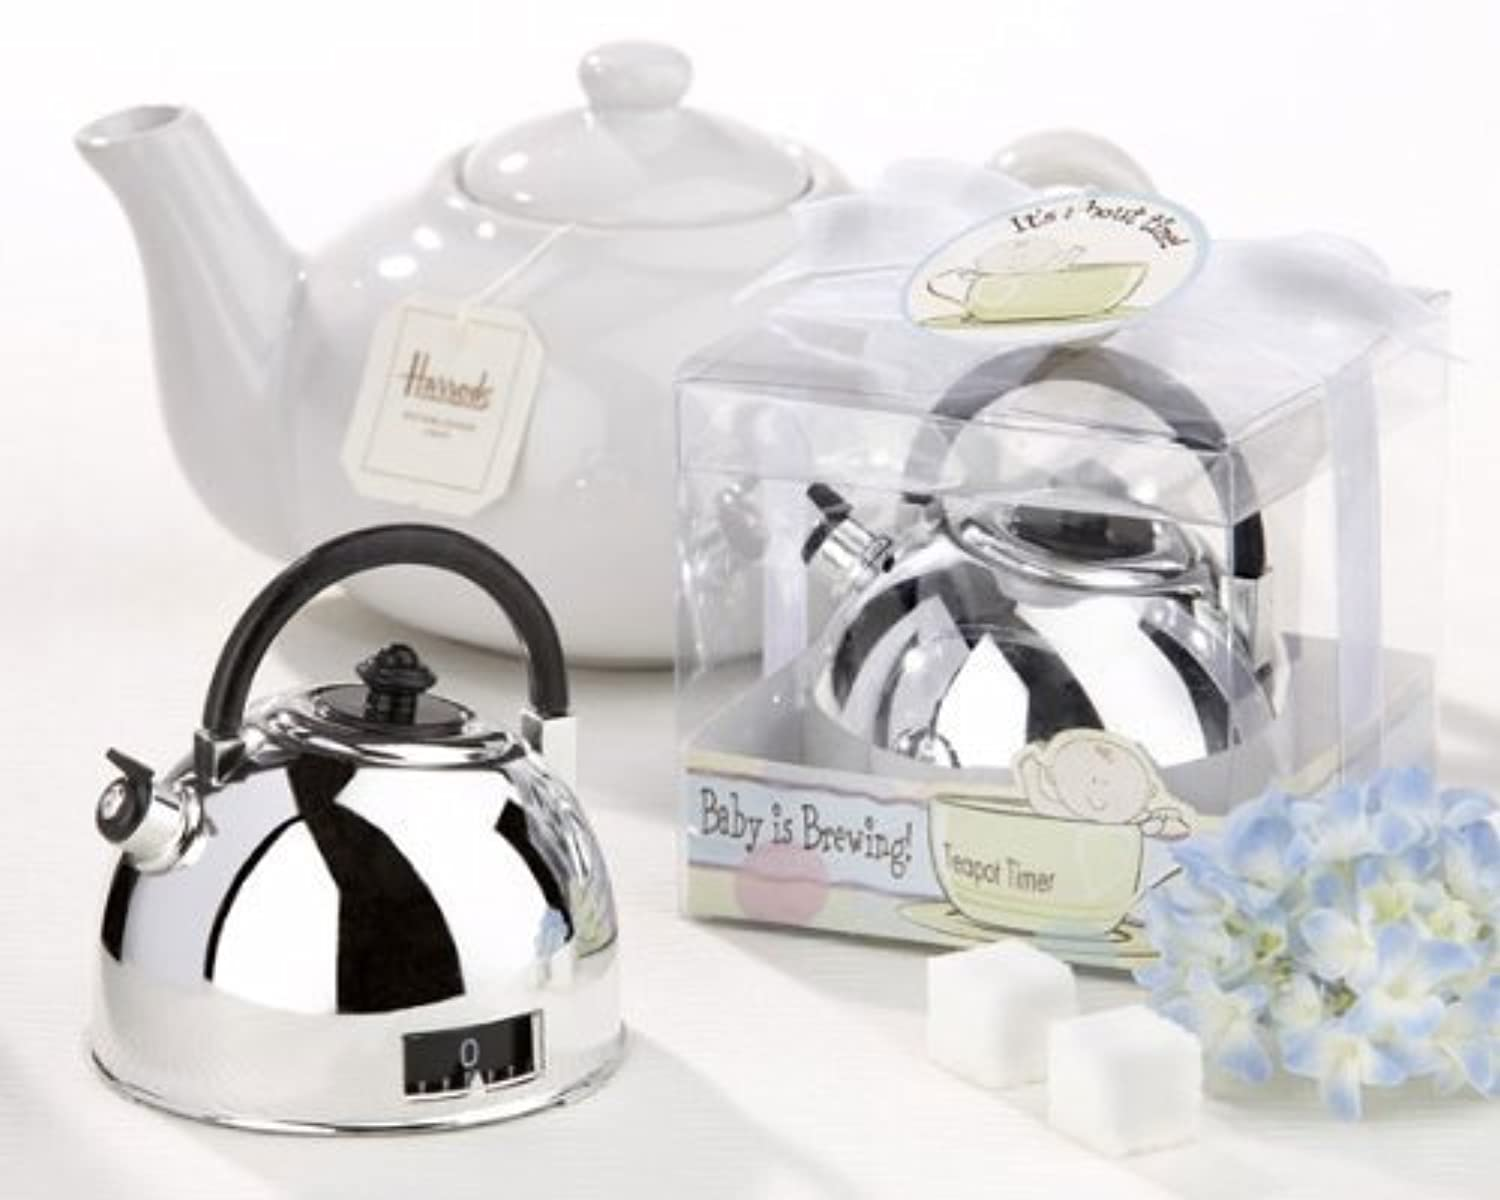 It's About Time - Baby is Brewing Teapot Timer - Baby Shower Gifts & Wedding Favors (Set of 24) by CutieBeauty KA [並行輸入品]